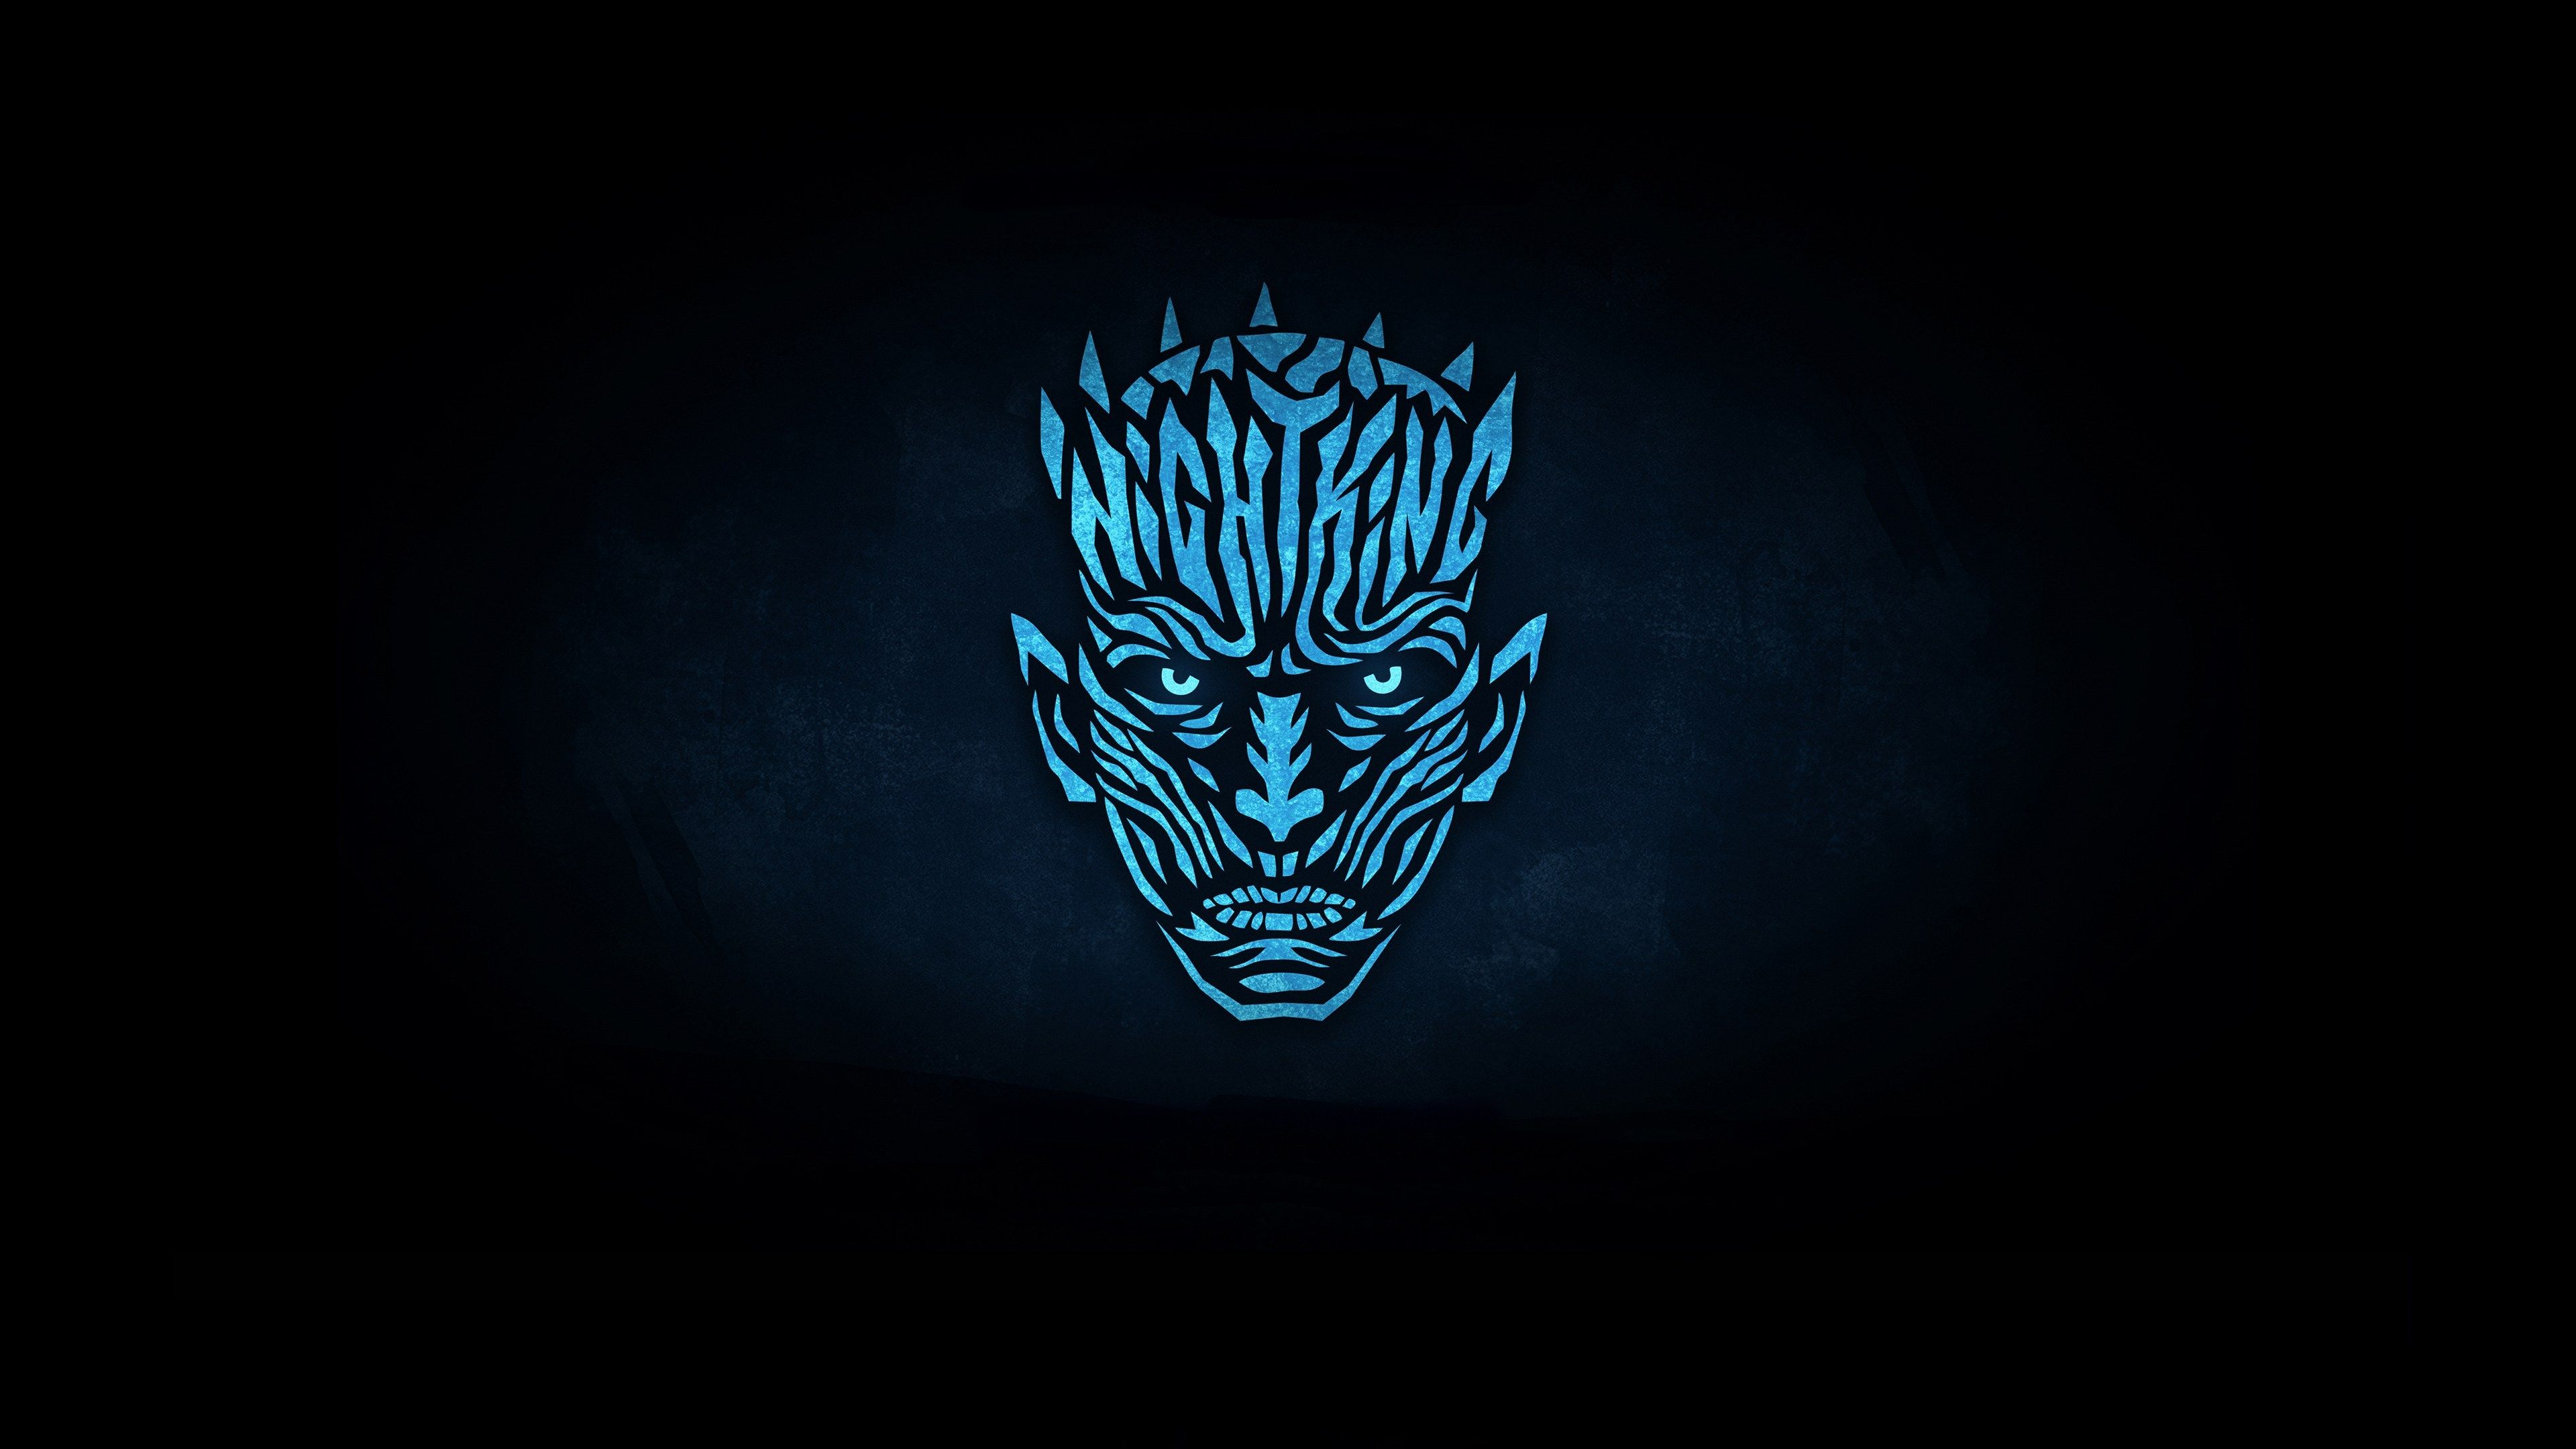 White Walker Symbolic Wallpaper 4k Wallpaper Gallery Ultra Hd 4k Wallpaper Wallpaper Free Download